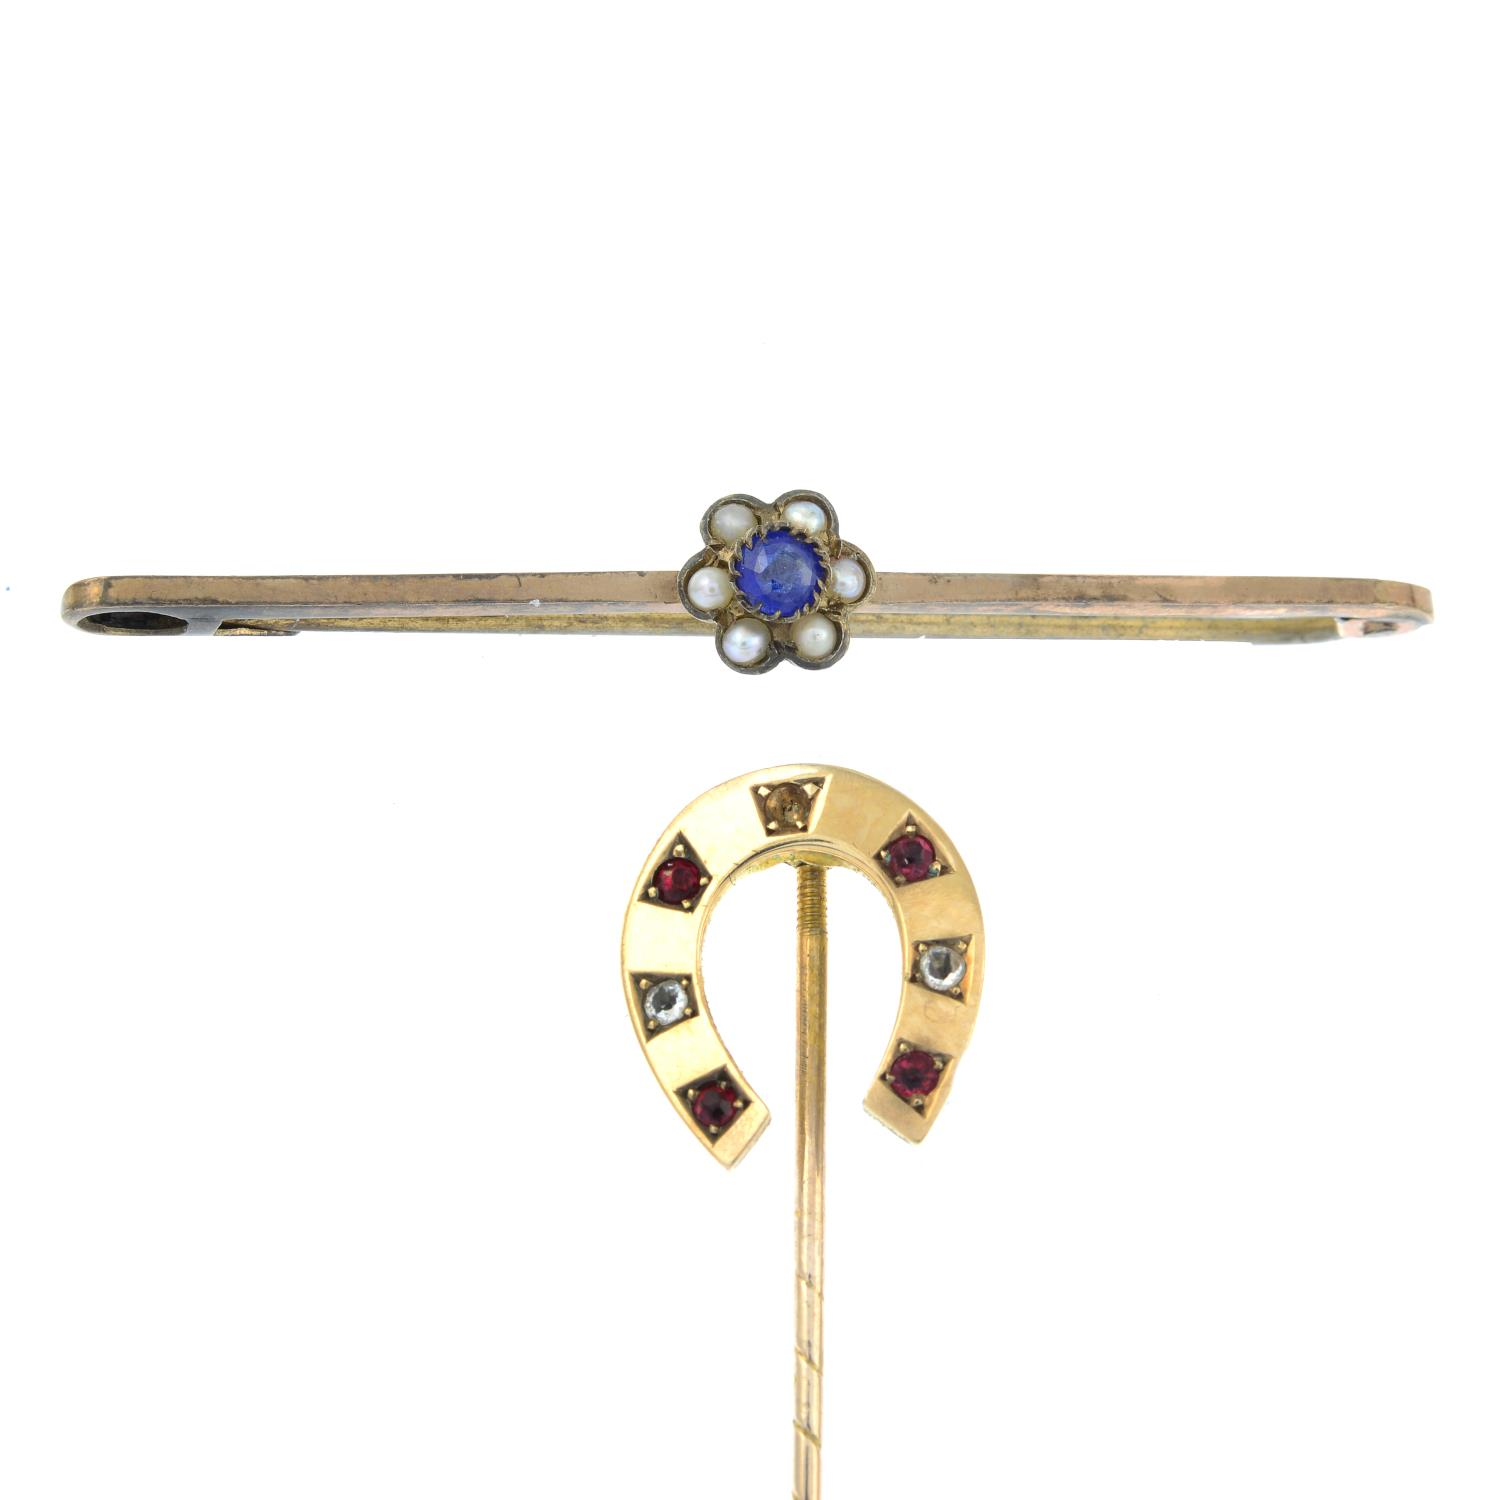 A 9ct gold paste horseshoe stickpin along with a paste a seed pearl bar brooch.